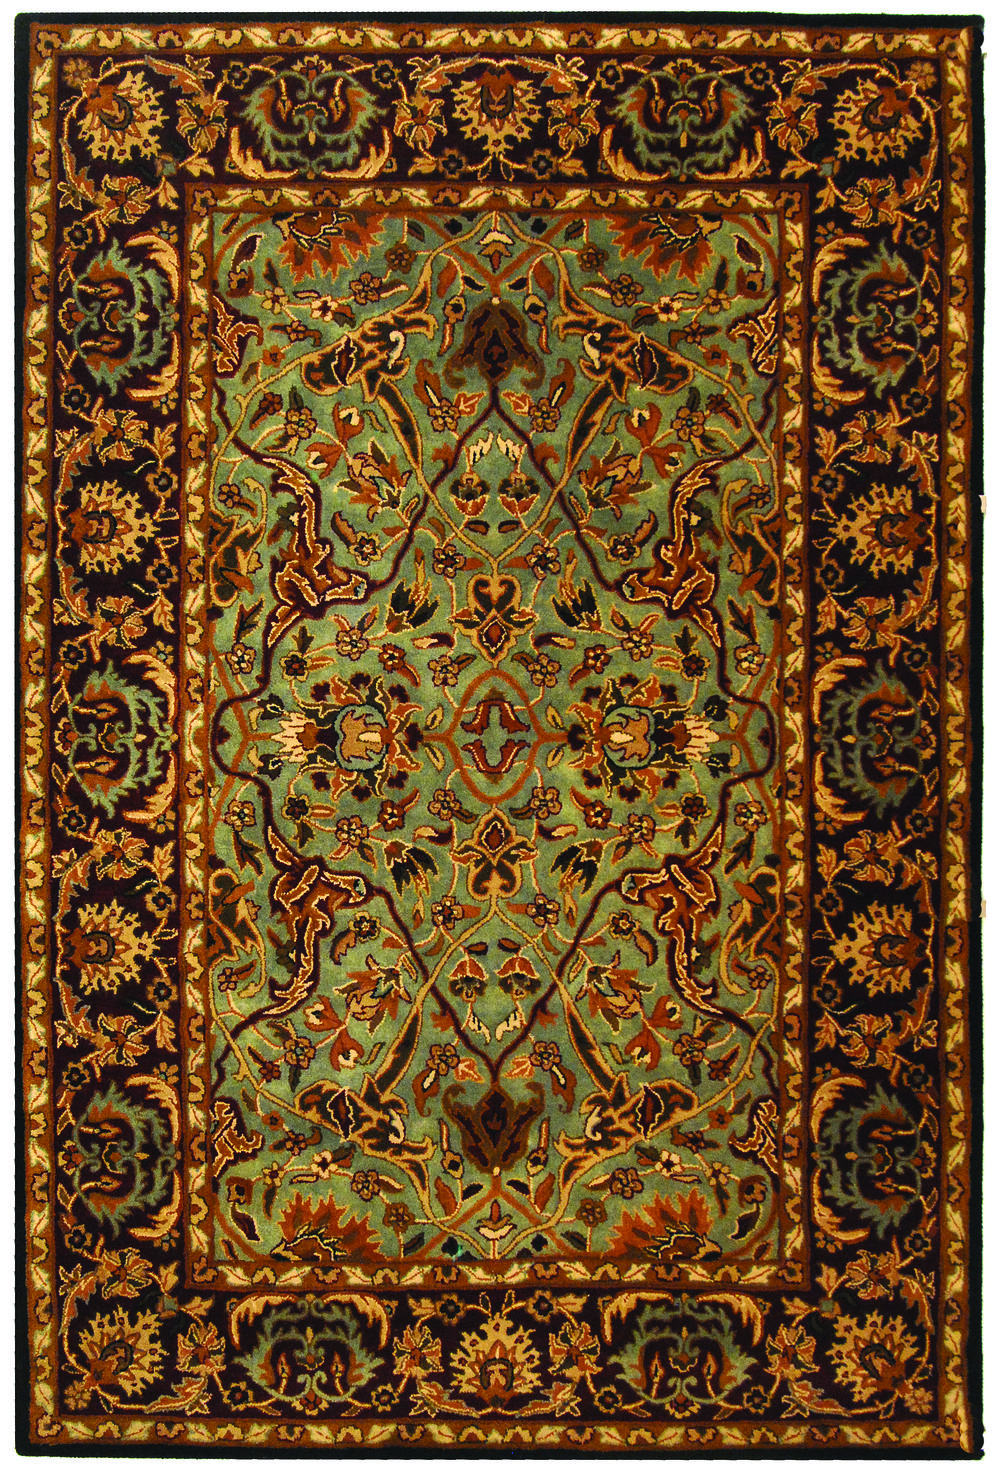 safavieh heritage hg794a light blue and red area rug free shipping. Black Bedroom Furniture Sets. Home Design Ideas